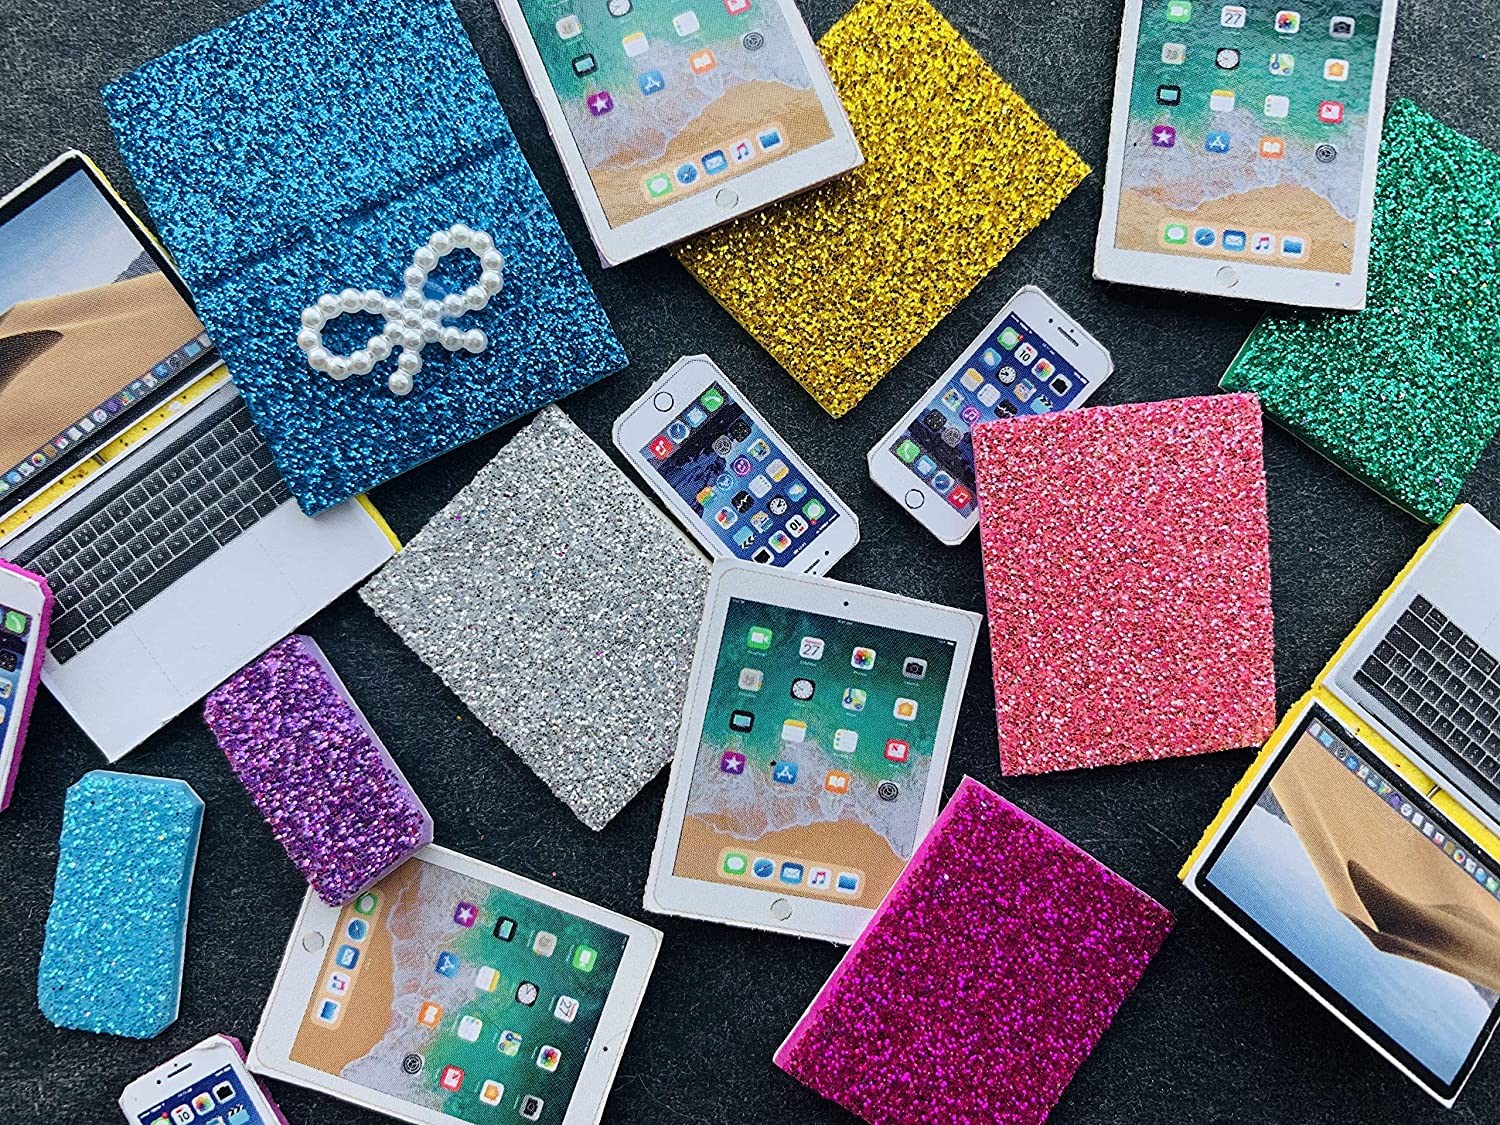 lps Pet Shop lps Cellphone Pad Computer 8pcs Random for lps Cats and Dogs